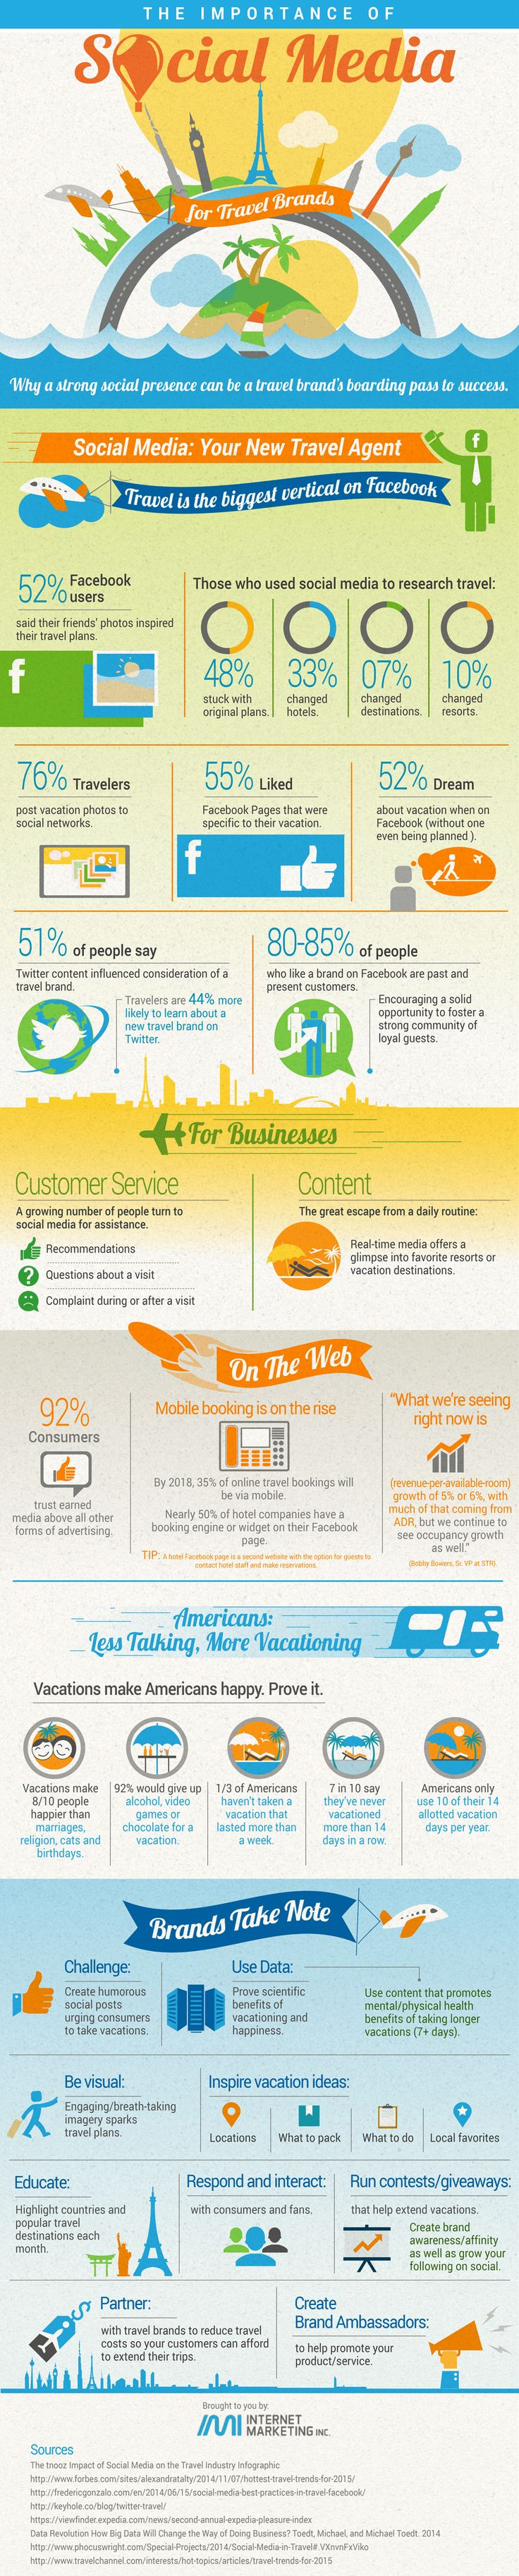 The Importance of Social Media for Travel Brands #infographic #Brands #Travel